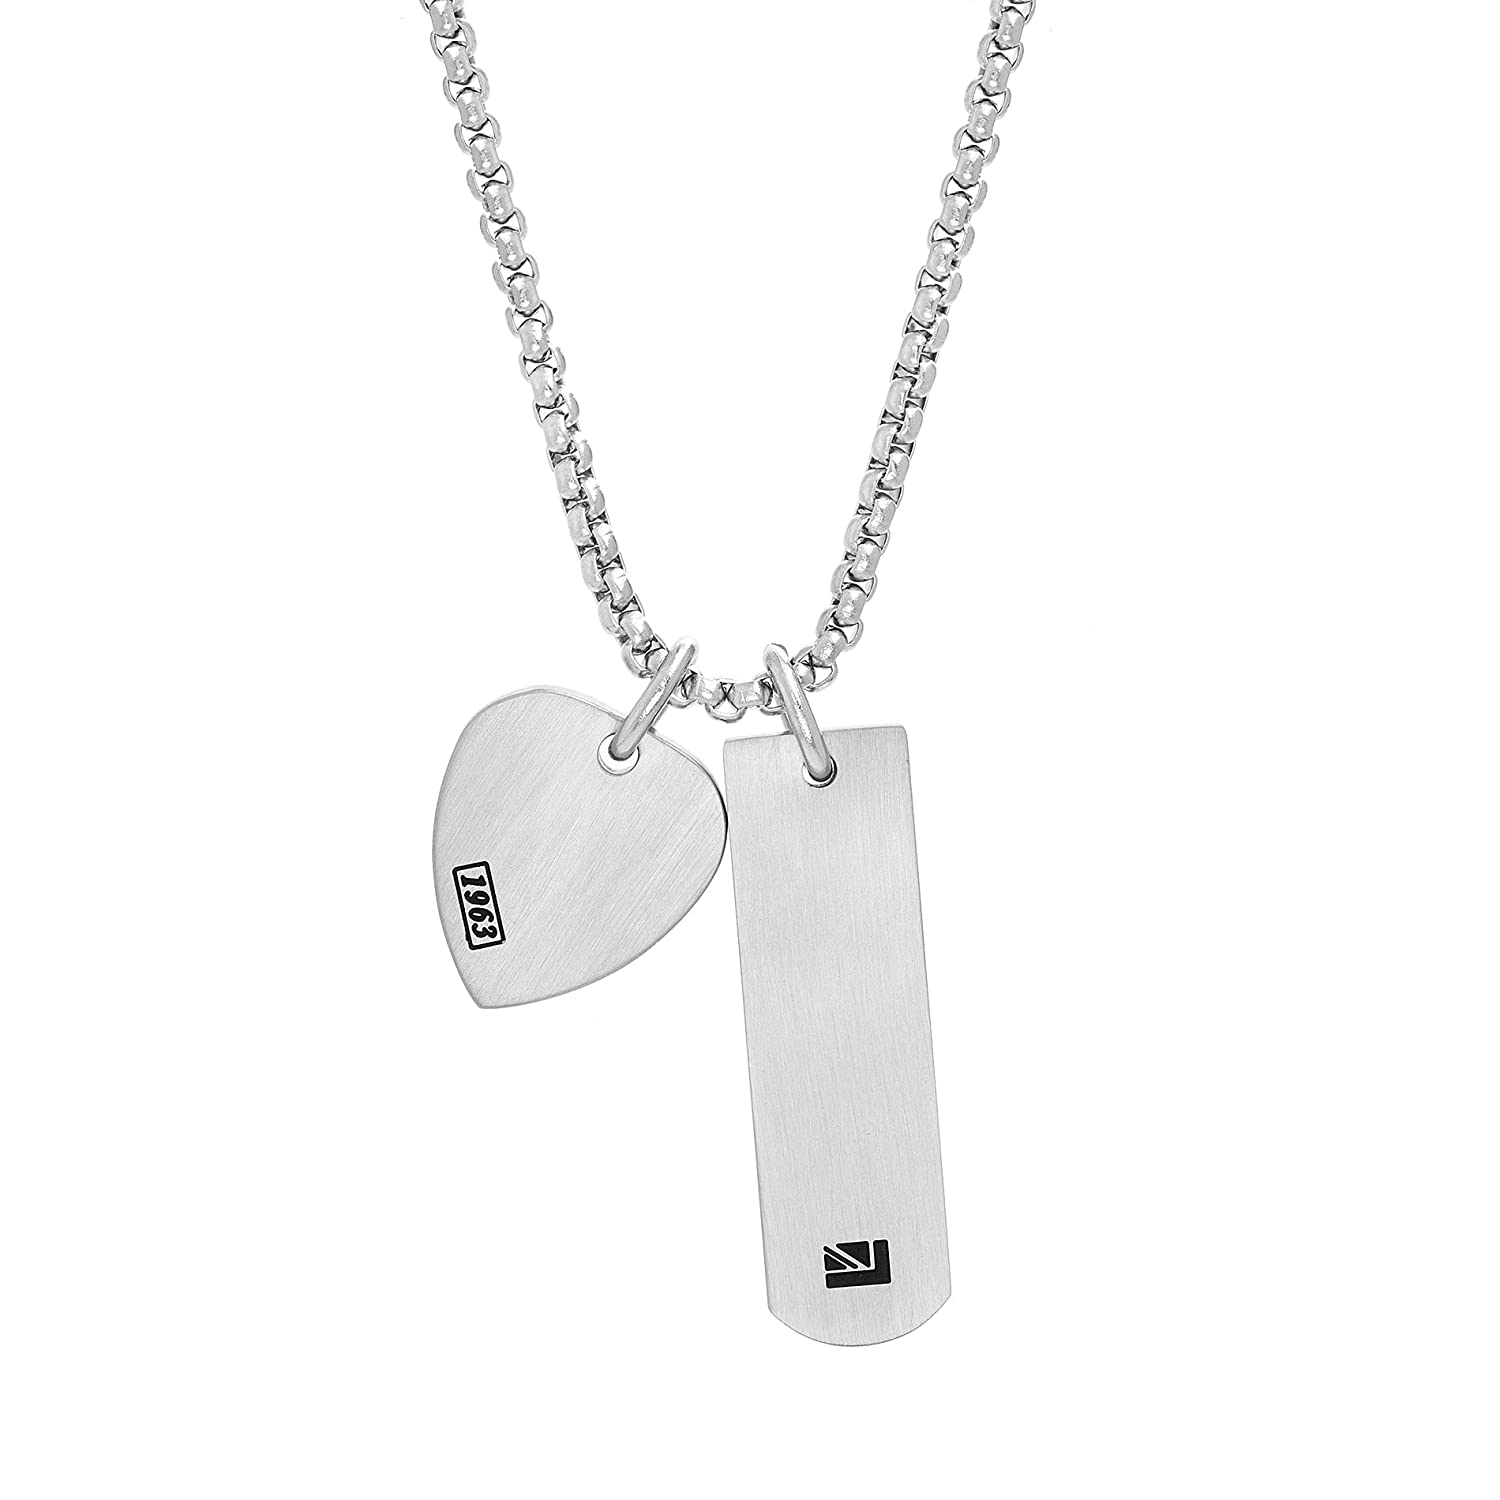 Ben Sherman Men's Guitar Pick and Geo Shaped Bar Charm Necklace with Stainless Steel Box Chain, 25 BSNS567980